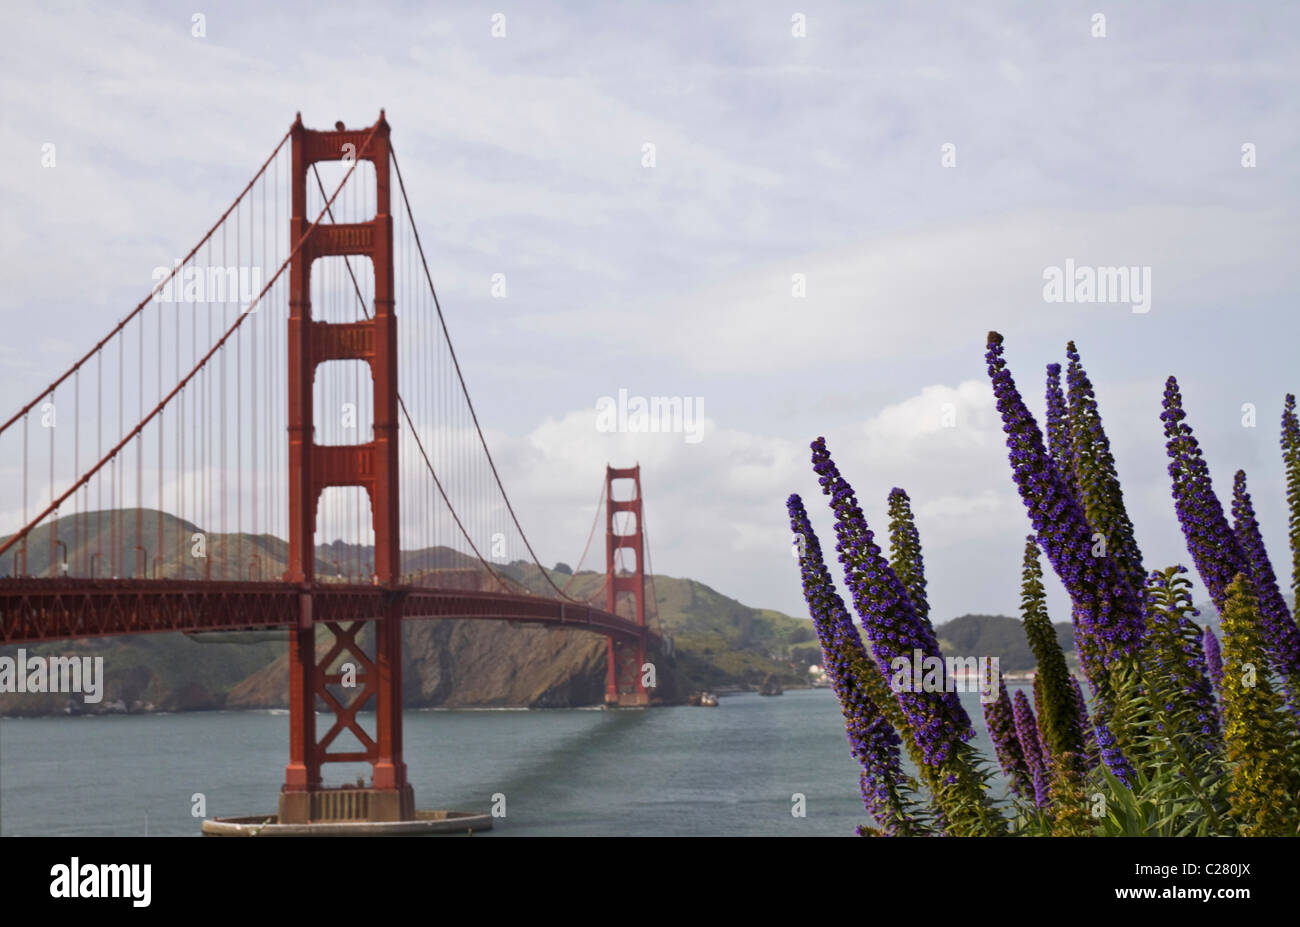 View of Golden Gate Bridge and large purple flowers from viewpoint, San Francisco Bay, California, USA - Stock Image